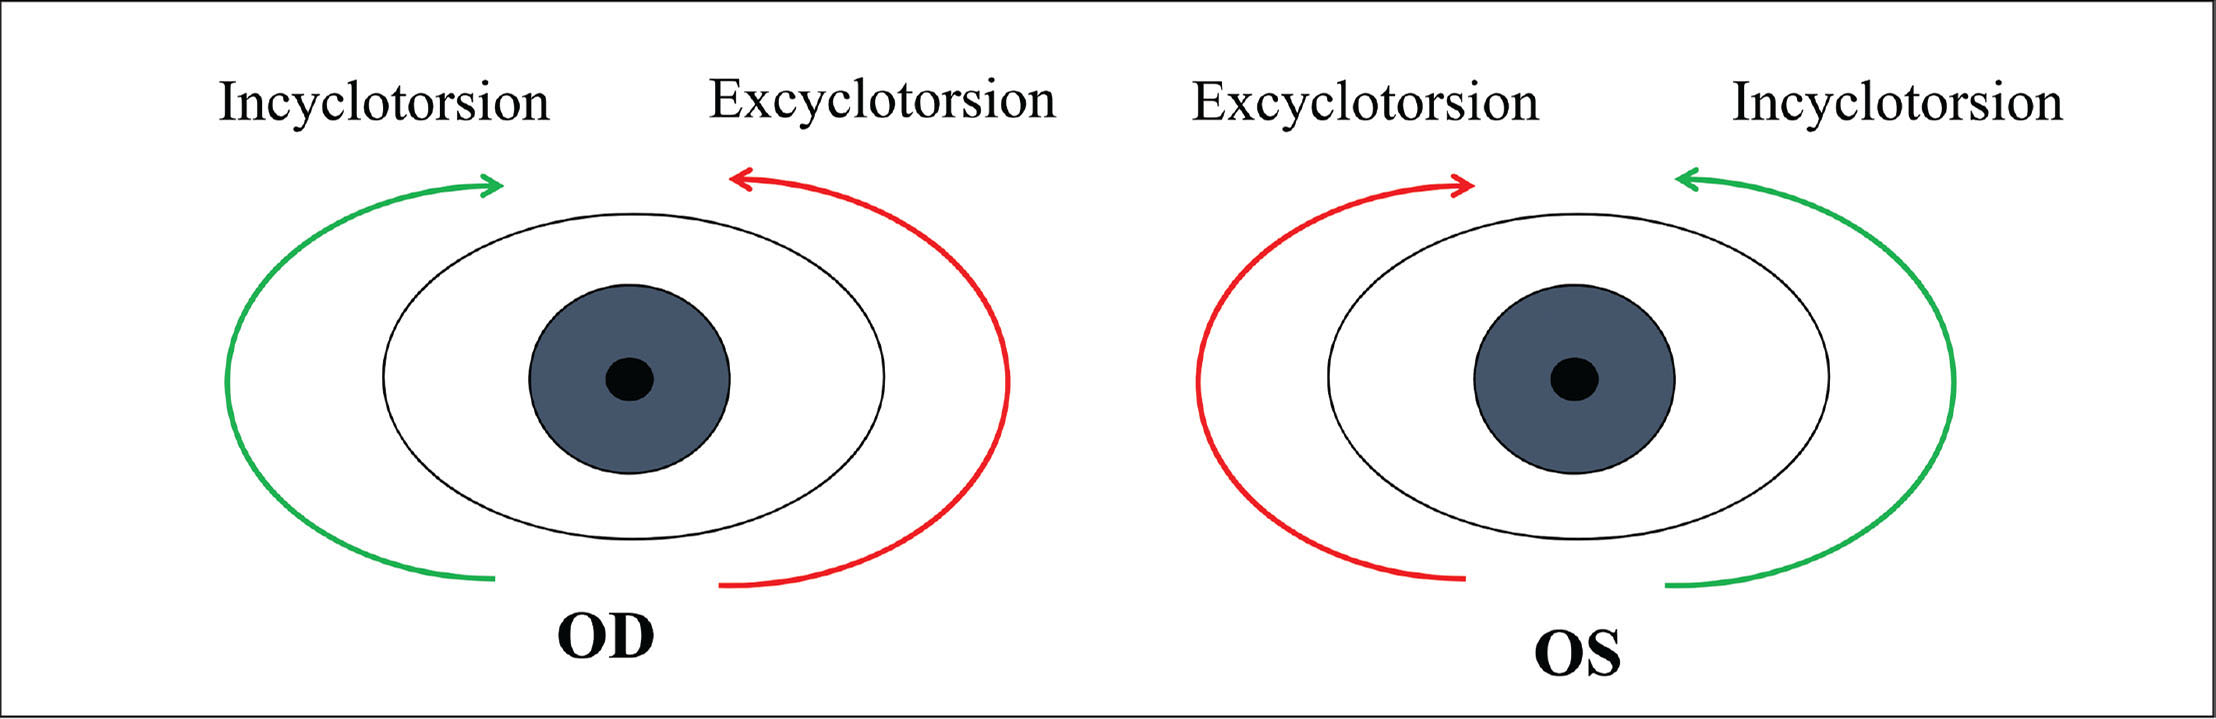 Directions of cyclotorsion in right and left eyes. The figure schematically illustrates directions of excyclotorsion and incyclotorsion in right (OD) and left (OS) eye. In right eyes, clockwise cyclotorsion indicates incyclotorsion and counterclockwise cyclotorsion indicates excyclotorsion. Conversely, clockwise and counterclockwise cyclotorsions in the left eye indicate excyclotorsion and incyclotorsion, respectively.